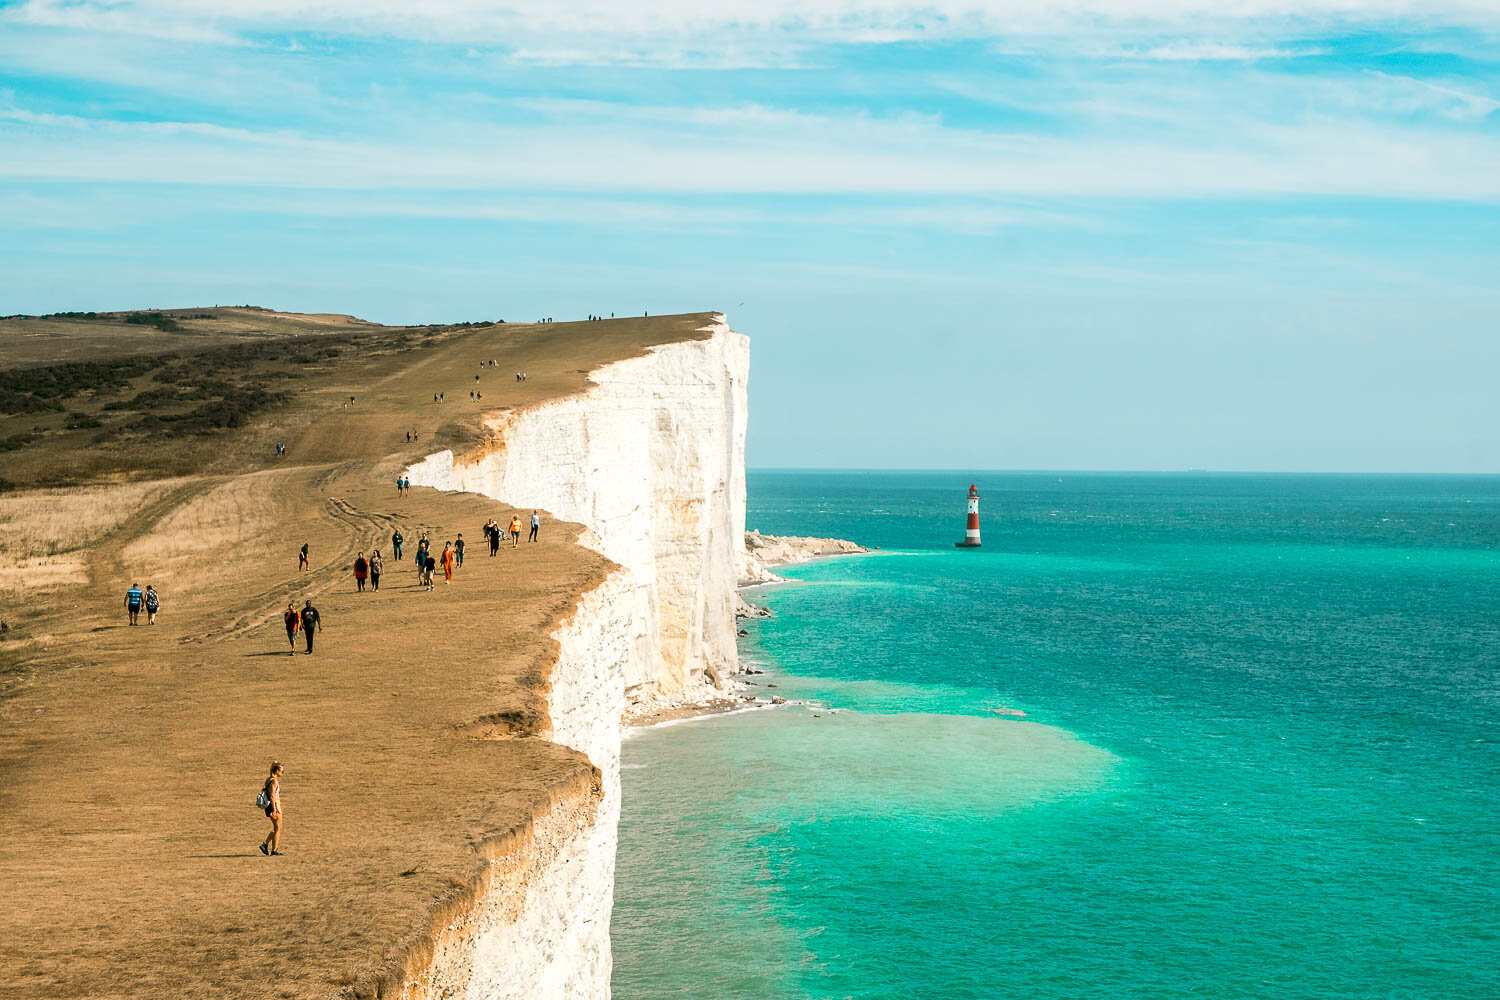 Visiting Seven Sisters Cliffs from London - Day Trip Guide